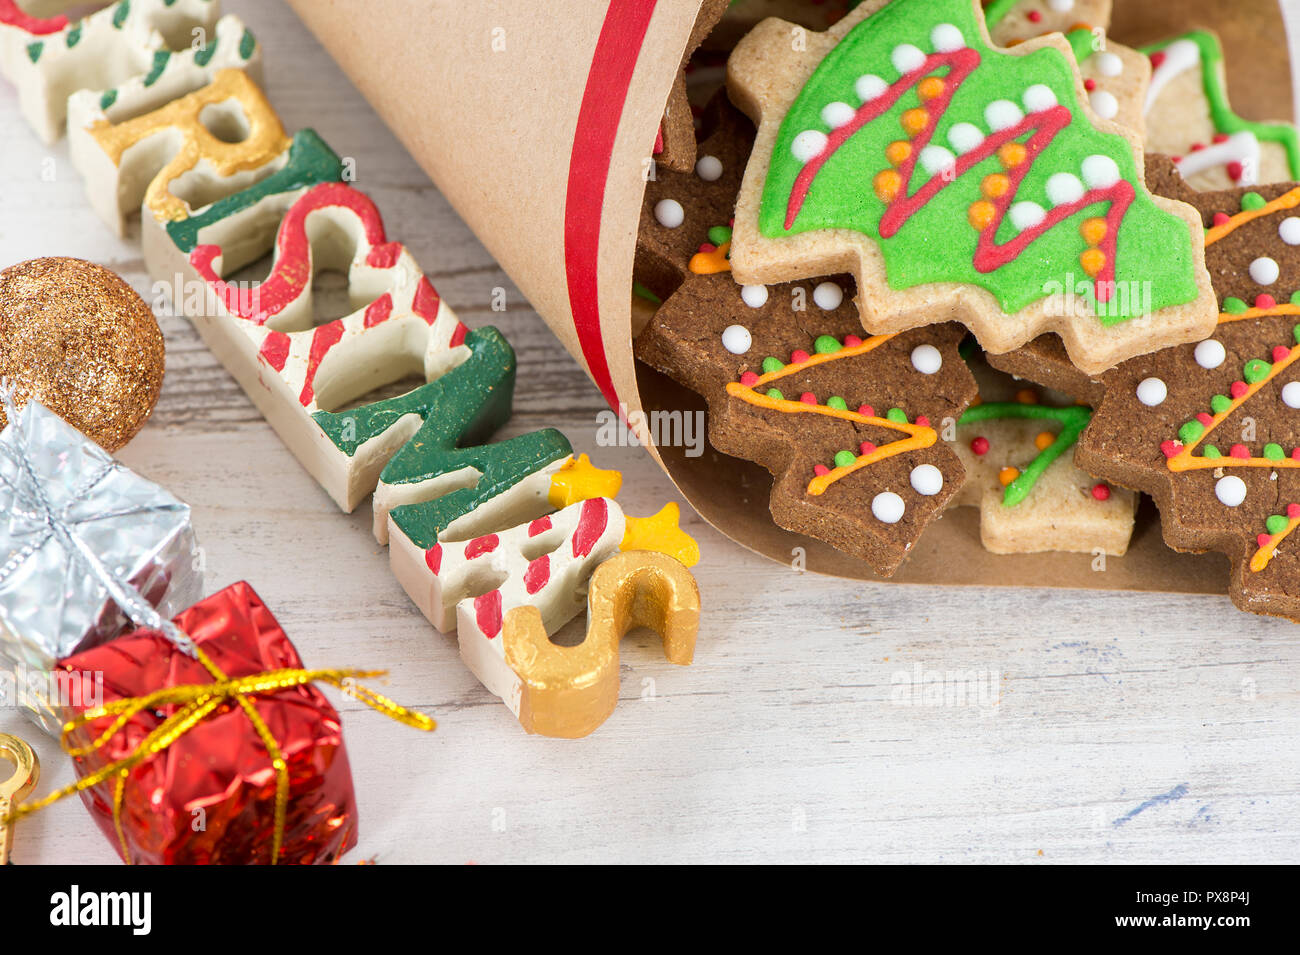 Tasty and cute baked Christmas cookies (gingerbread) with beautiful ...